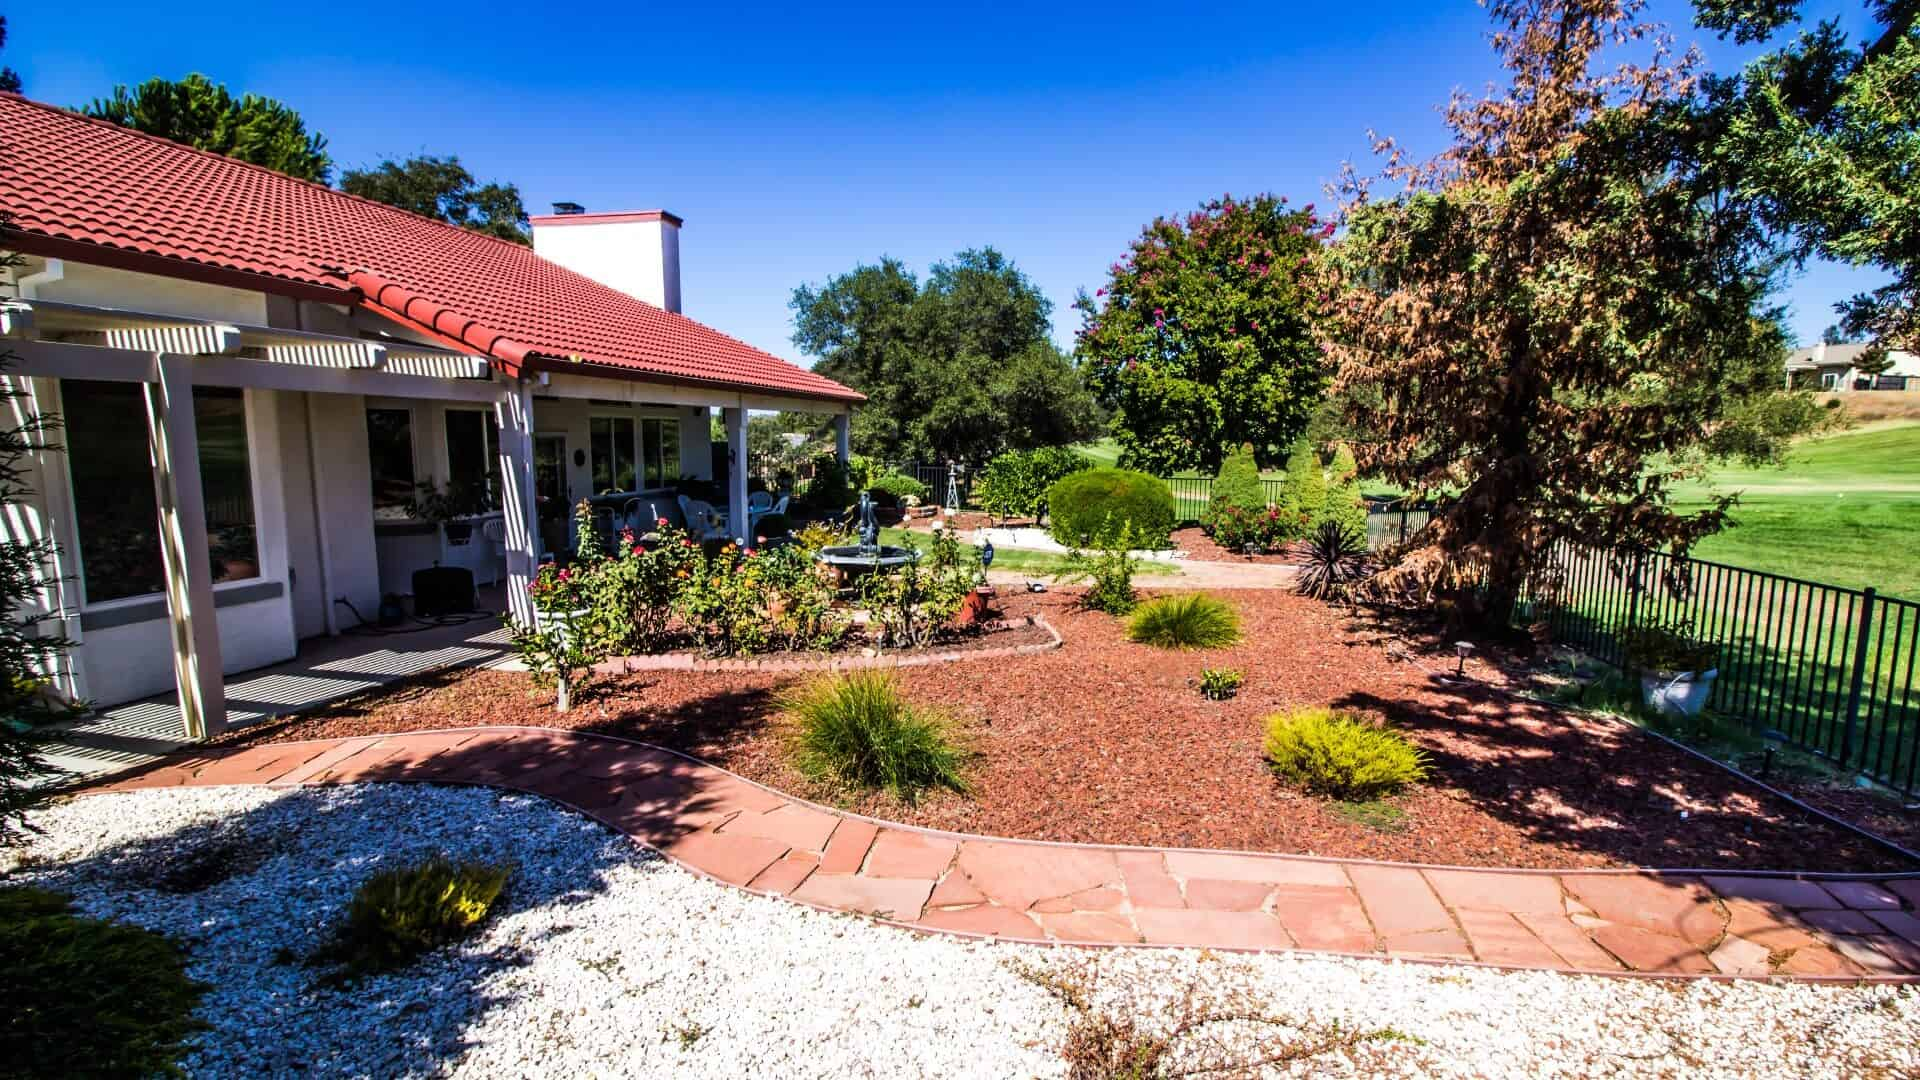 Residential landscaping that reduces fire hazards